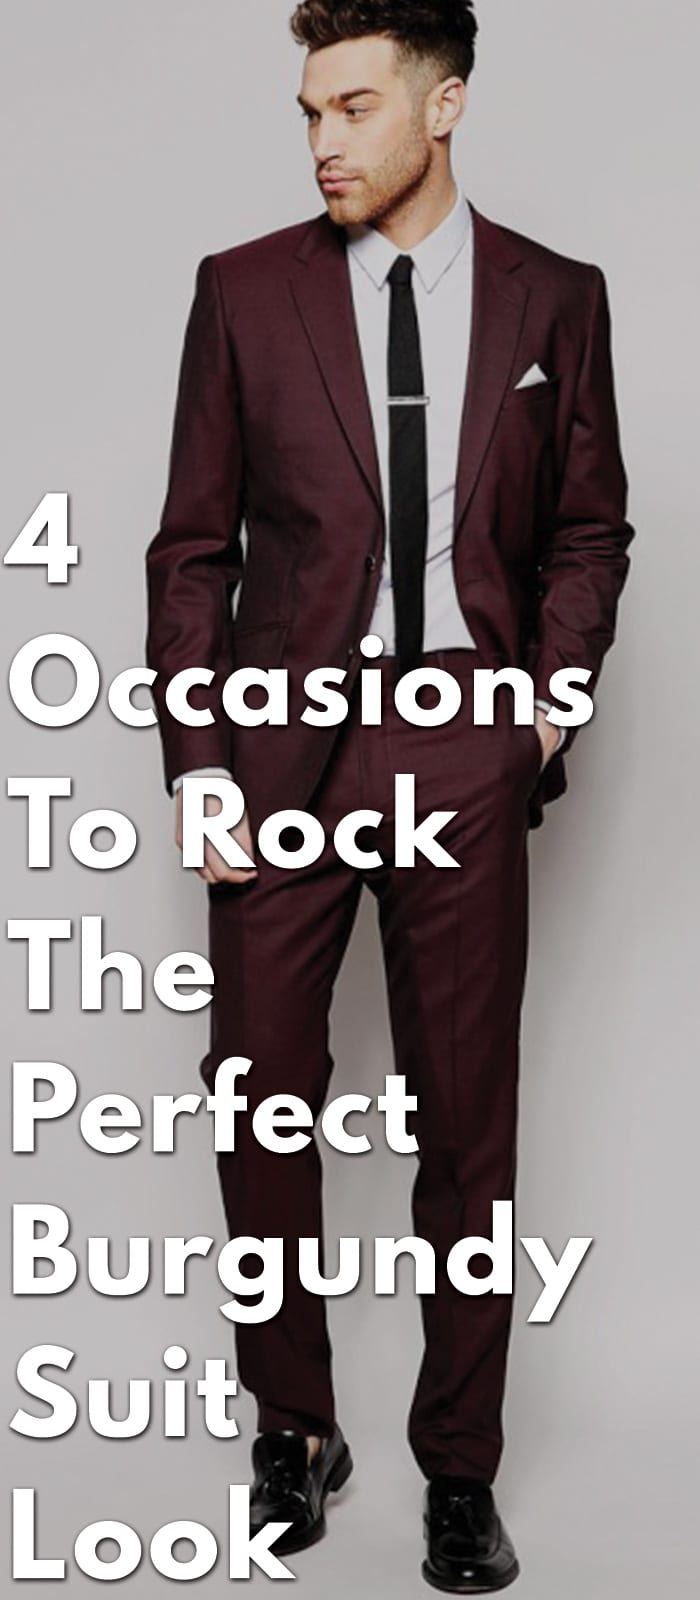 4-Occasions-To-Rock-The-Perfect-Burgundy-Suit-Look